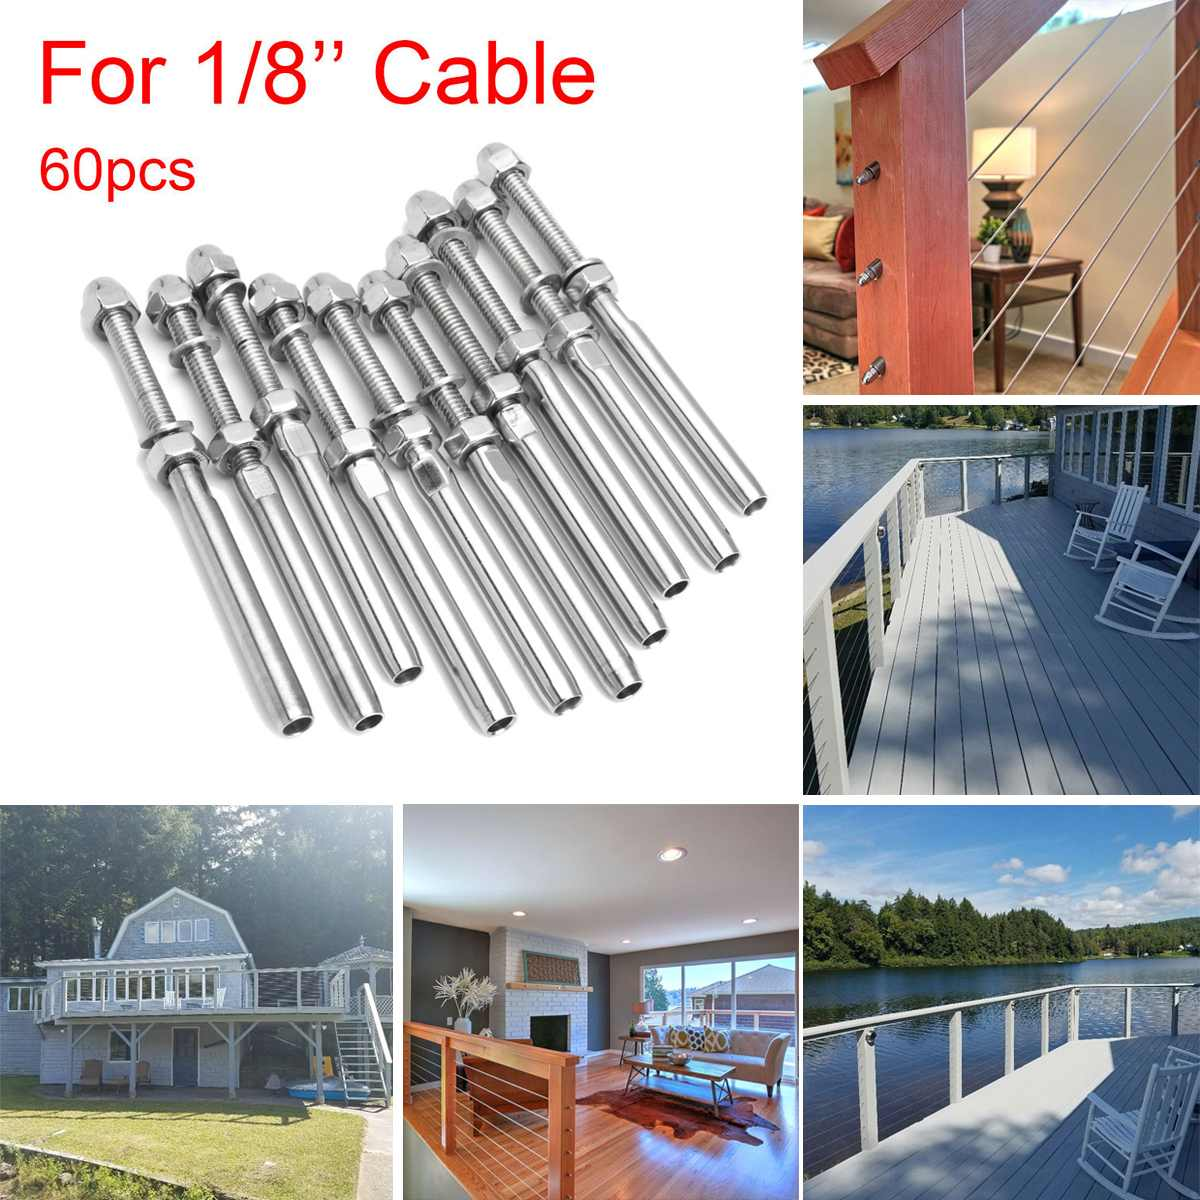 10Pcs/Set Stainless Steel Handrail Railing Cable Tensioner Threaded Stud End Fitting For 1/8 Inch Cable Wire Systems Parts Kit